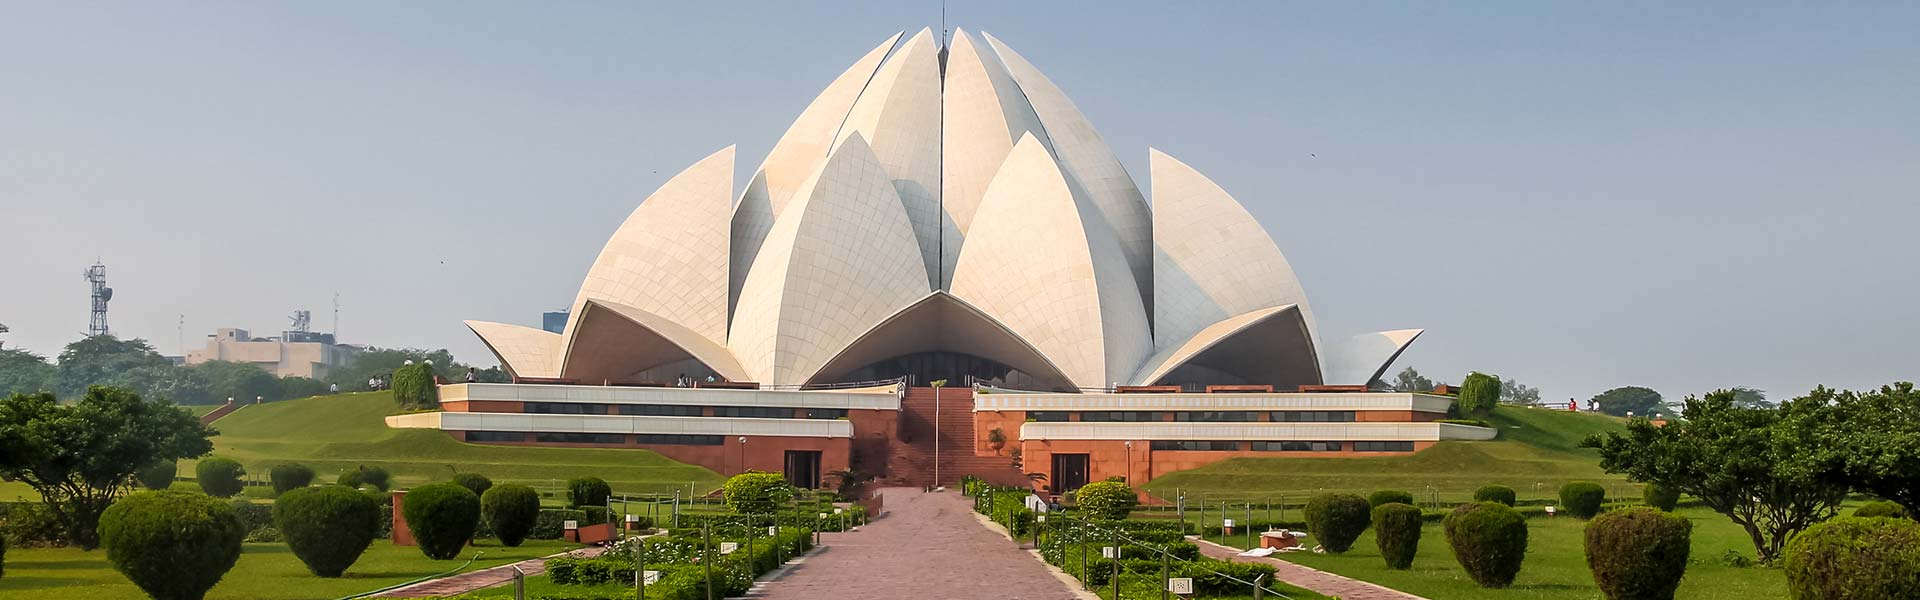 Lotus Temple, New Delhi - Bahá'í Houses of Worship